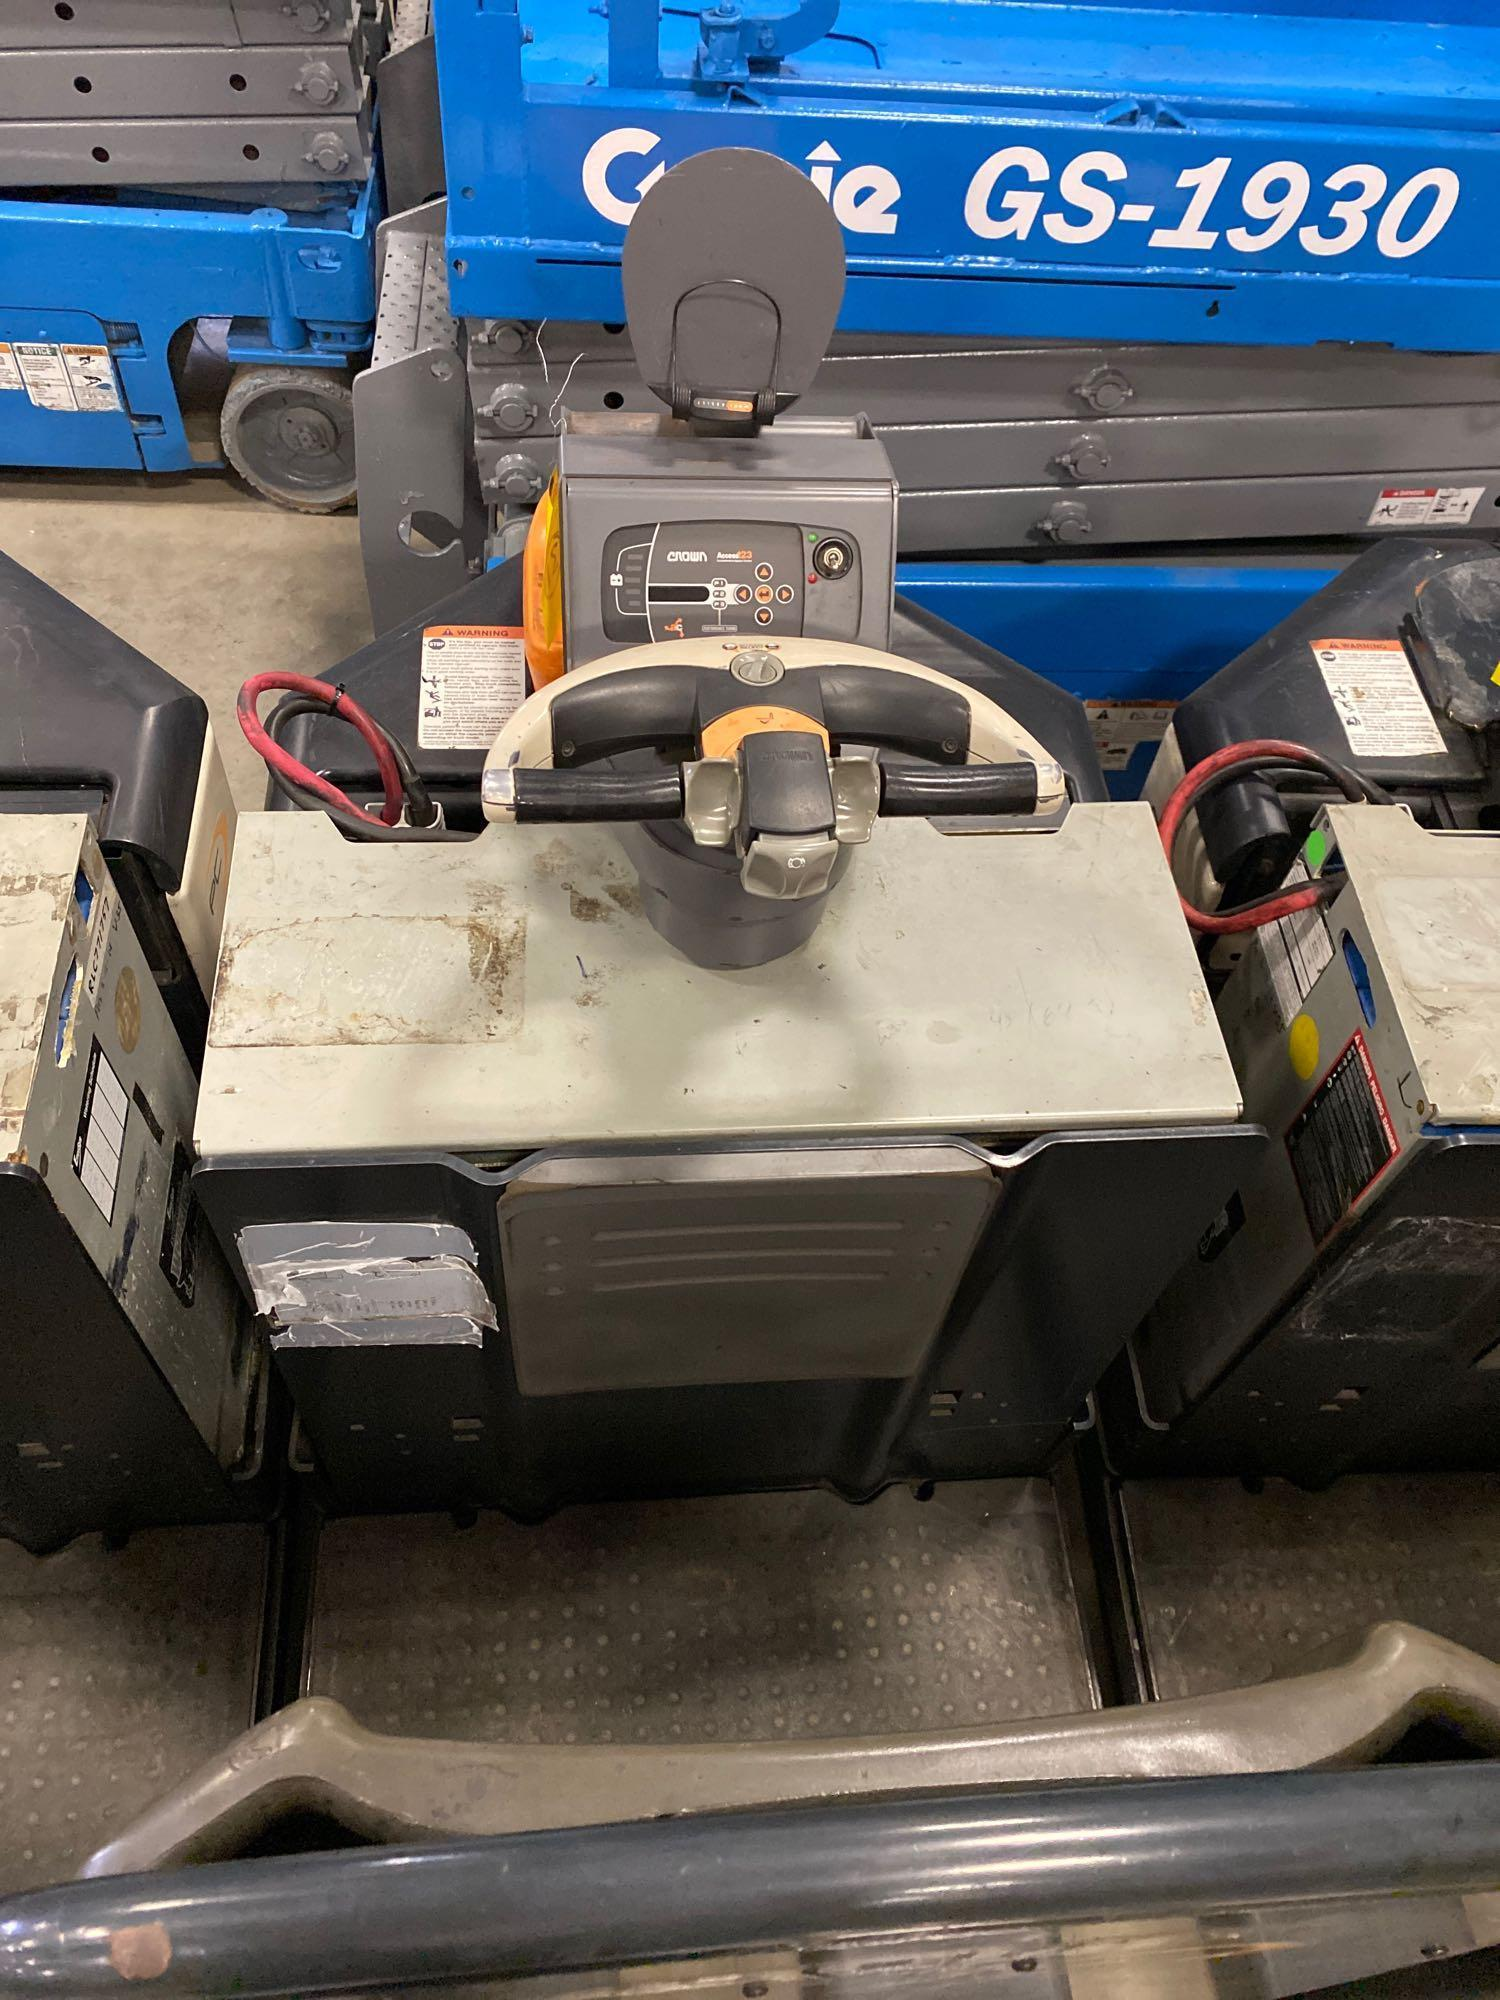 2012 CROWN ELECTRIC PALLET JACK, 8,000 LB CAPACITY, MODEL PC4500-80, 24V, RUNS AND OPERATES - Image 3 of 7